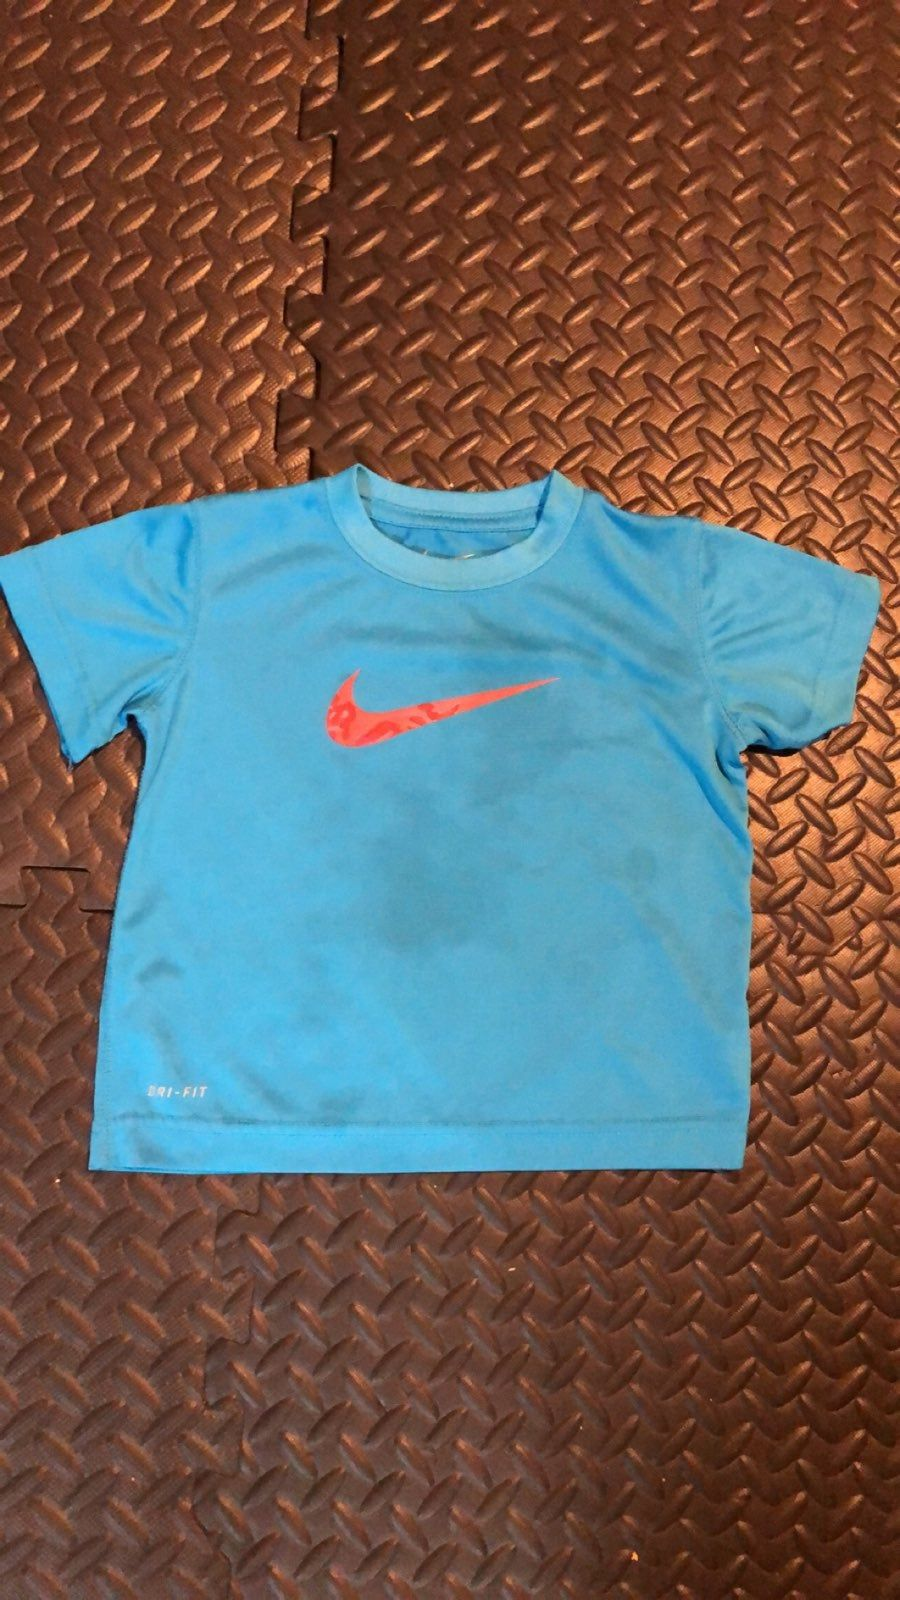 2t Nike Tee Light Blue With Pink Swoosh Nwot Pet Free Smoke Free Home I Ship Same Day Check Out My Other Listings And As Nike Tees Tees Nike